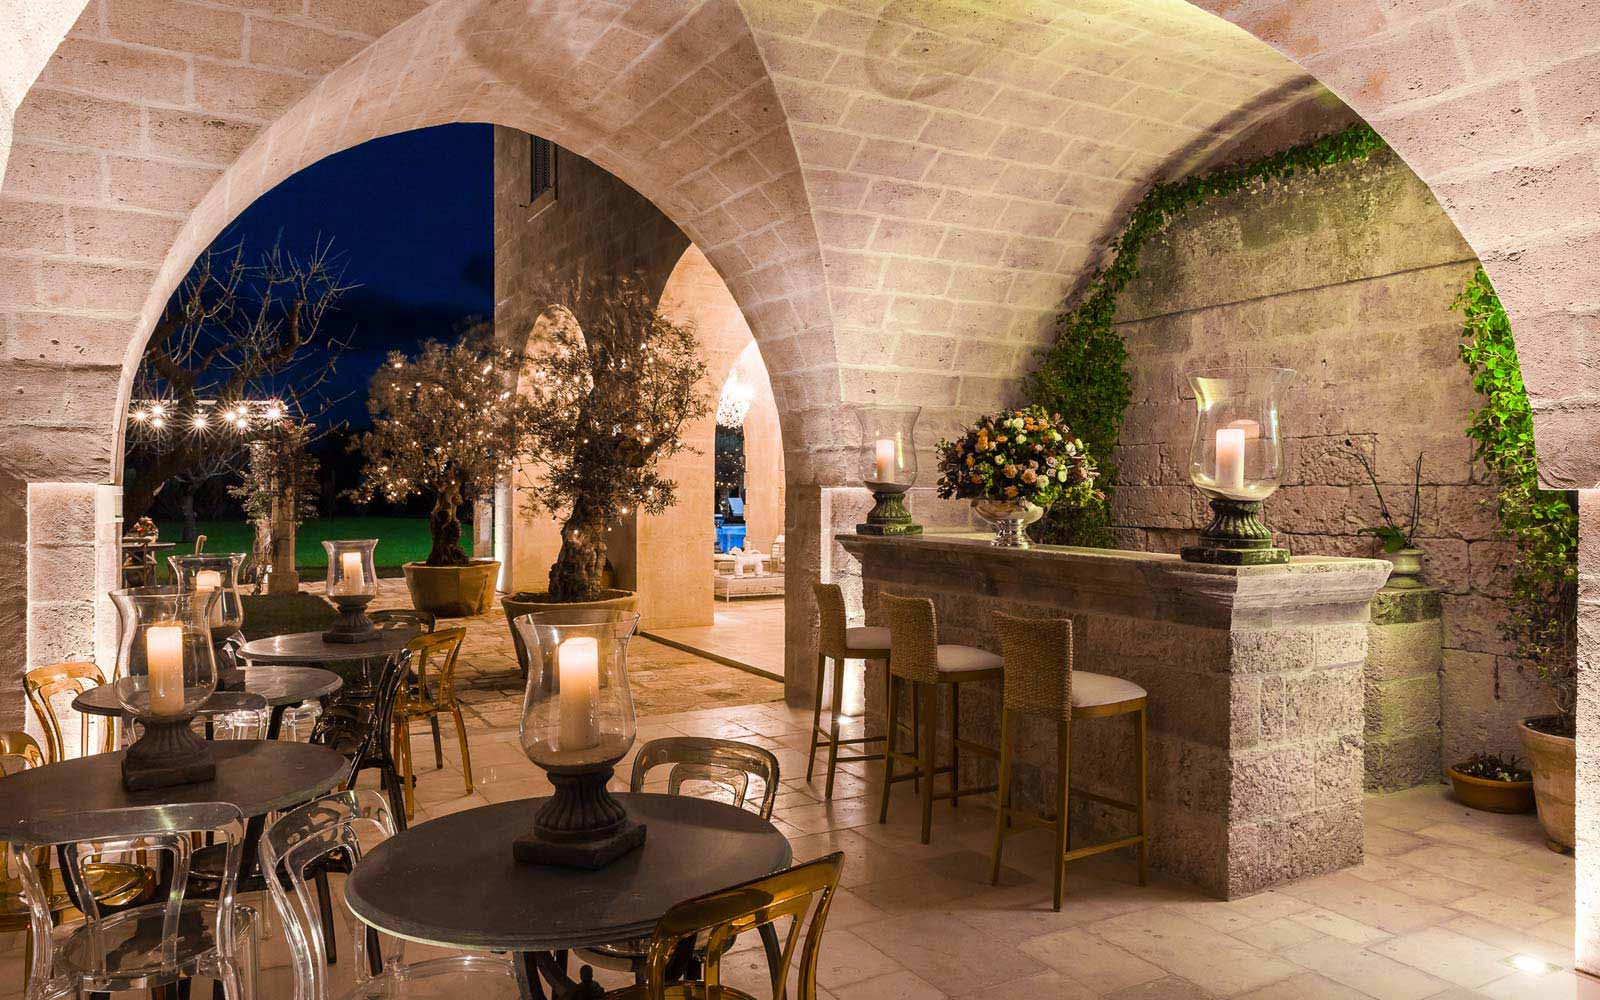 Candlelight night at La Residenza of Masseria Pettolecchia